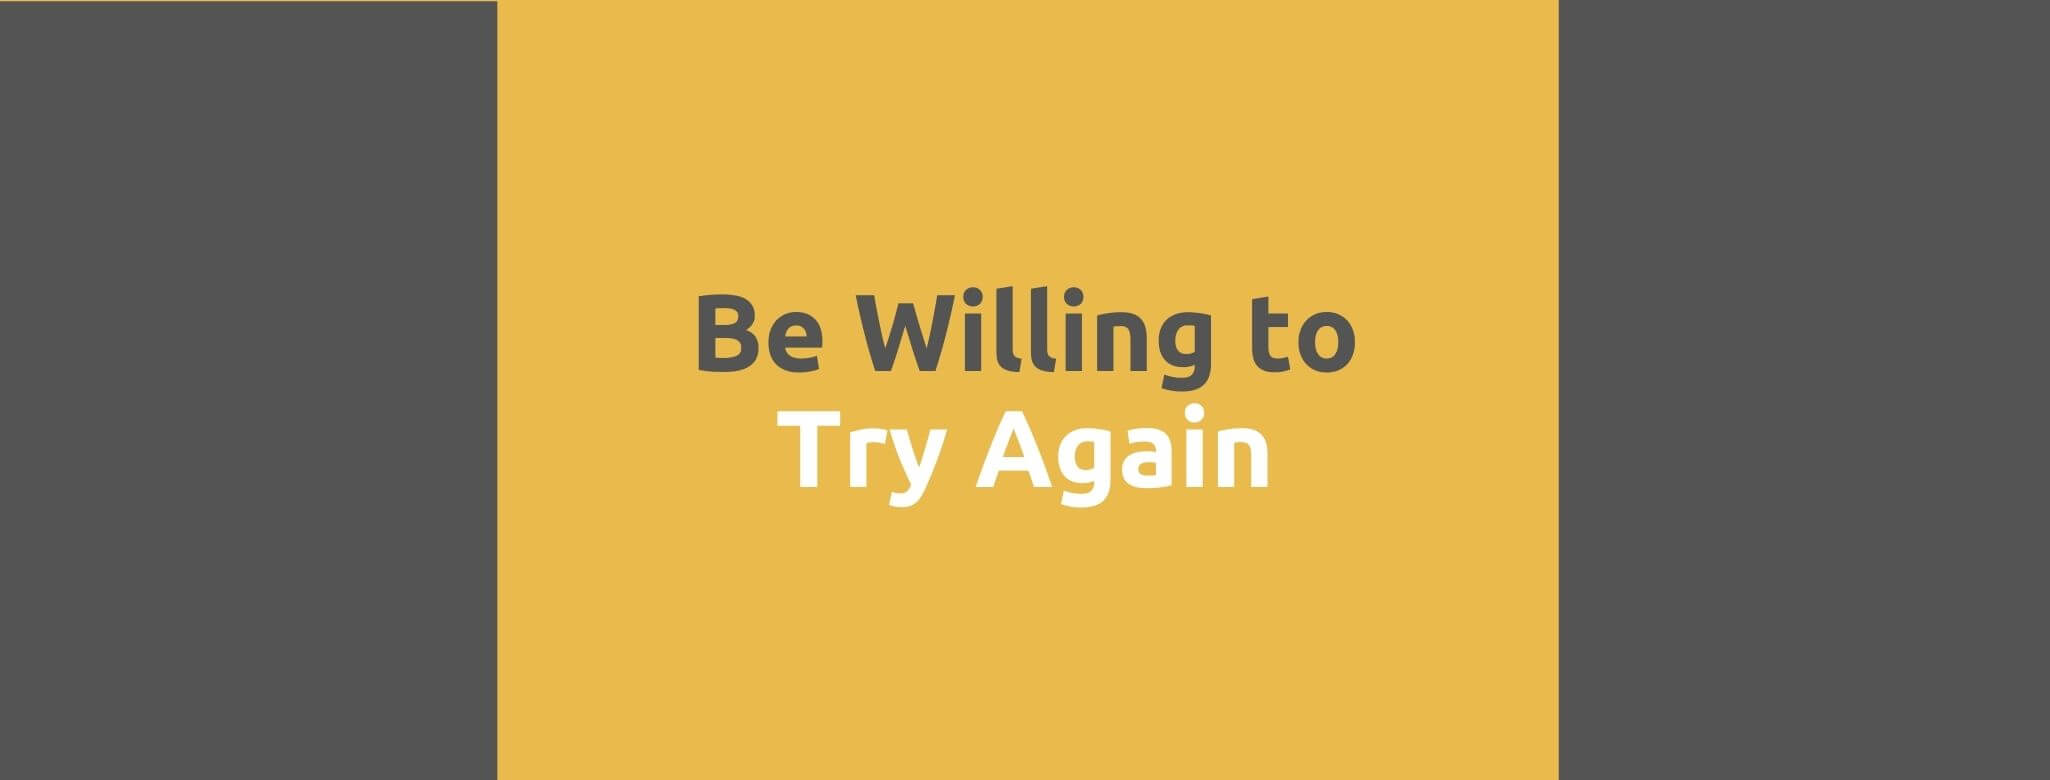 Be Willing to Try Again - 35 Things Every Seller Should Do to Offer Great Customer Service - Replyco Helpdesk Software for eCommerce